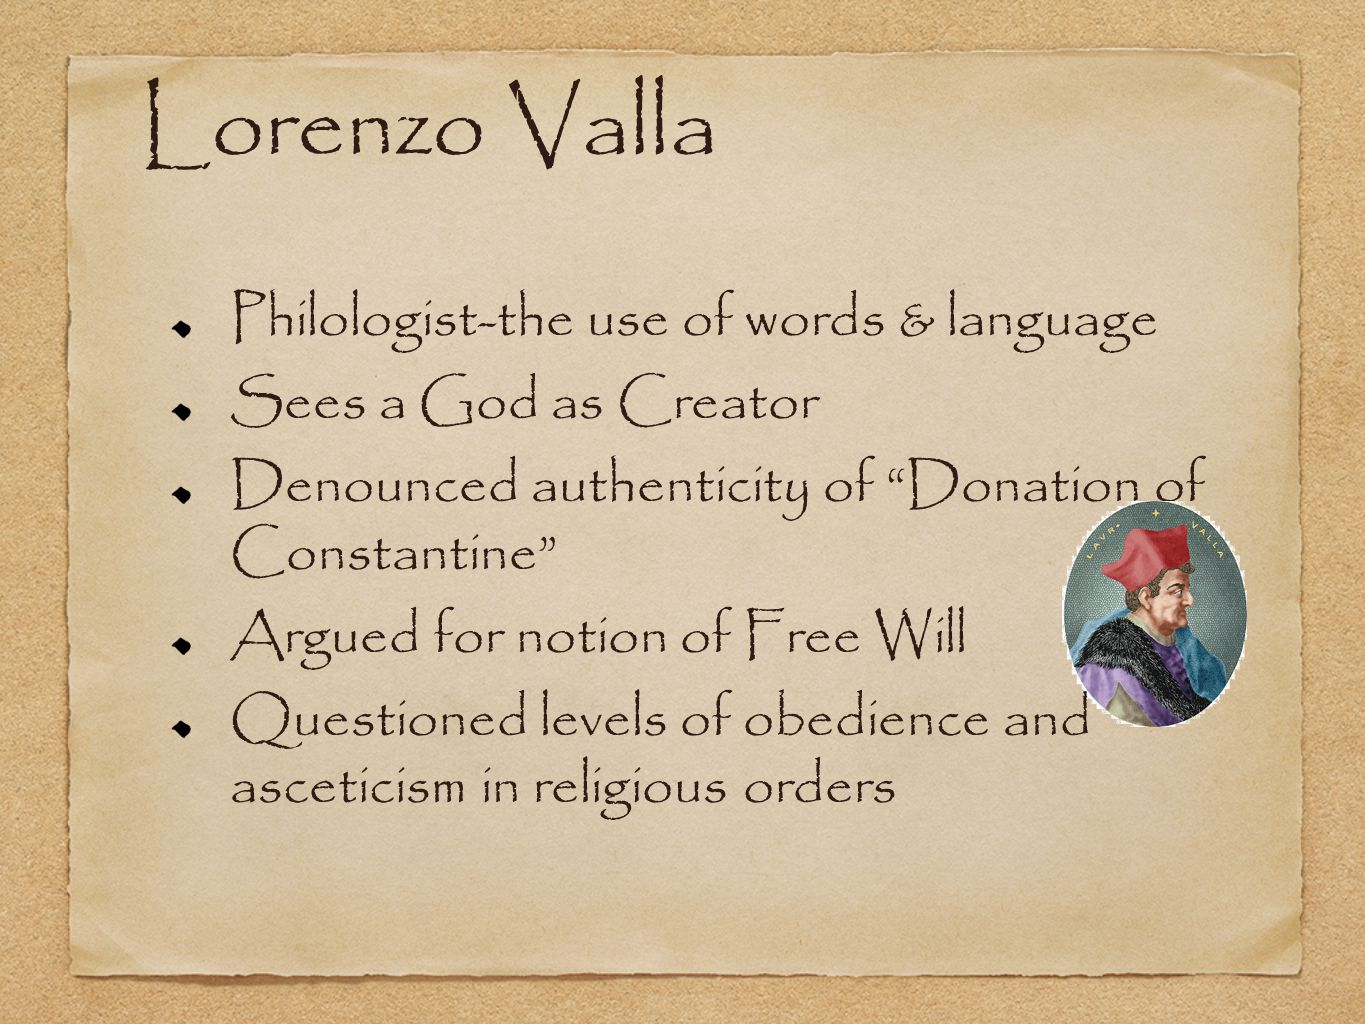 Lorenzo Valla Philologist-the use of words & language Sees a God as Creator Denounced authenticity of Donation of Constantine Argued for notion of Free Will Questioned levels of obedience and asceticism in religious orders